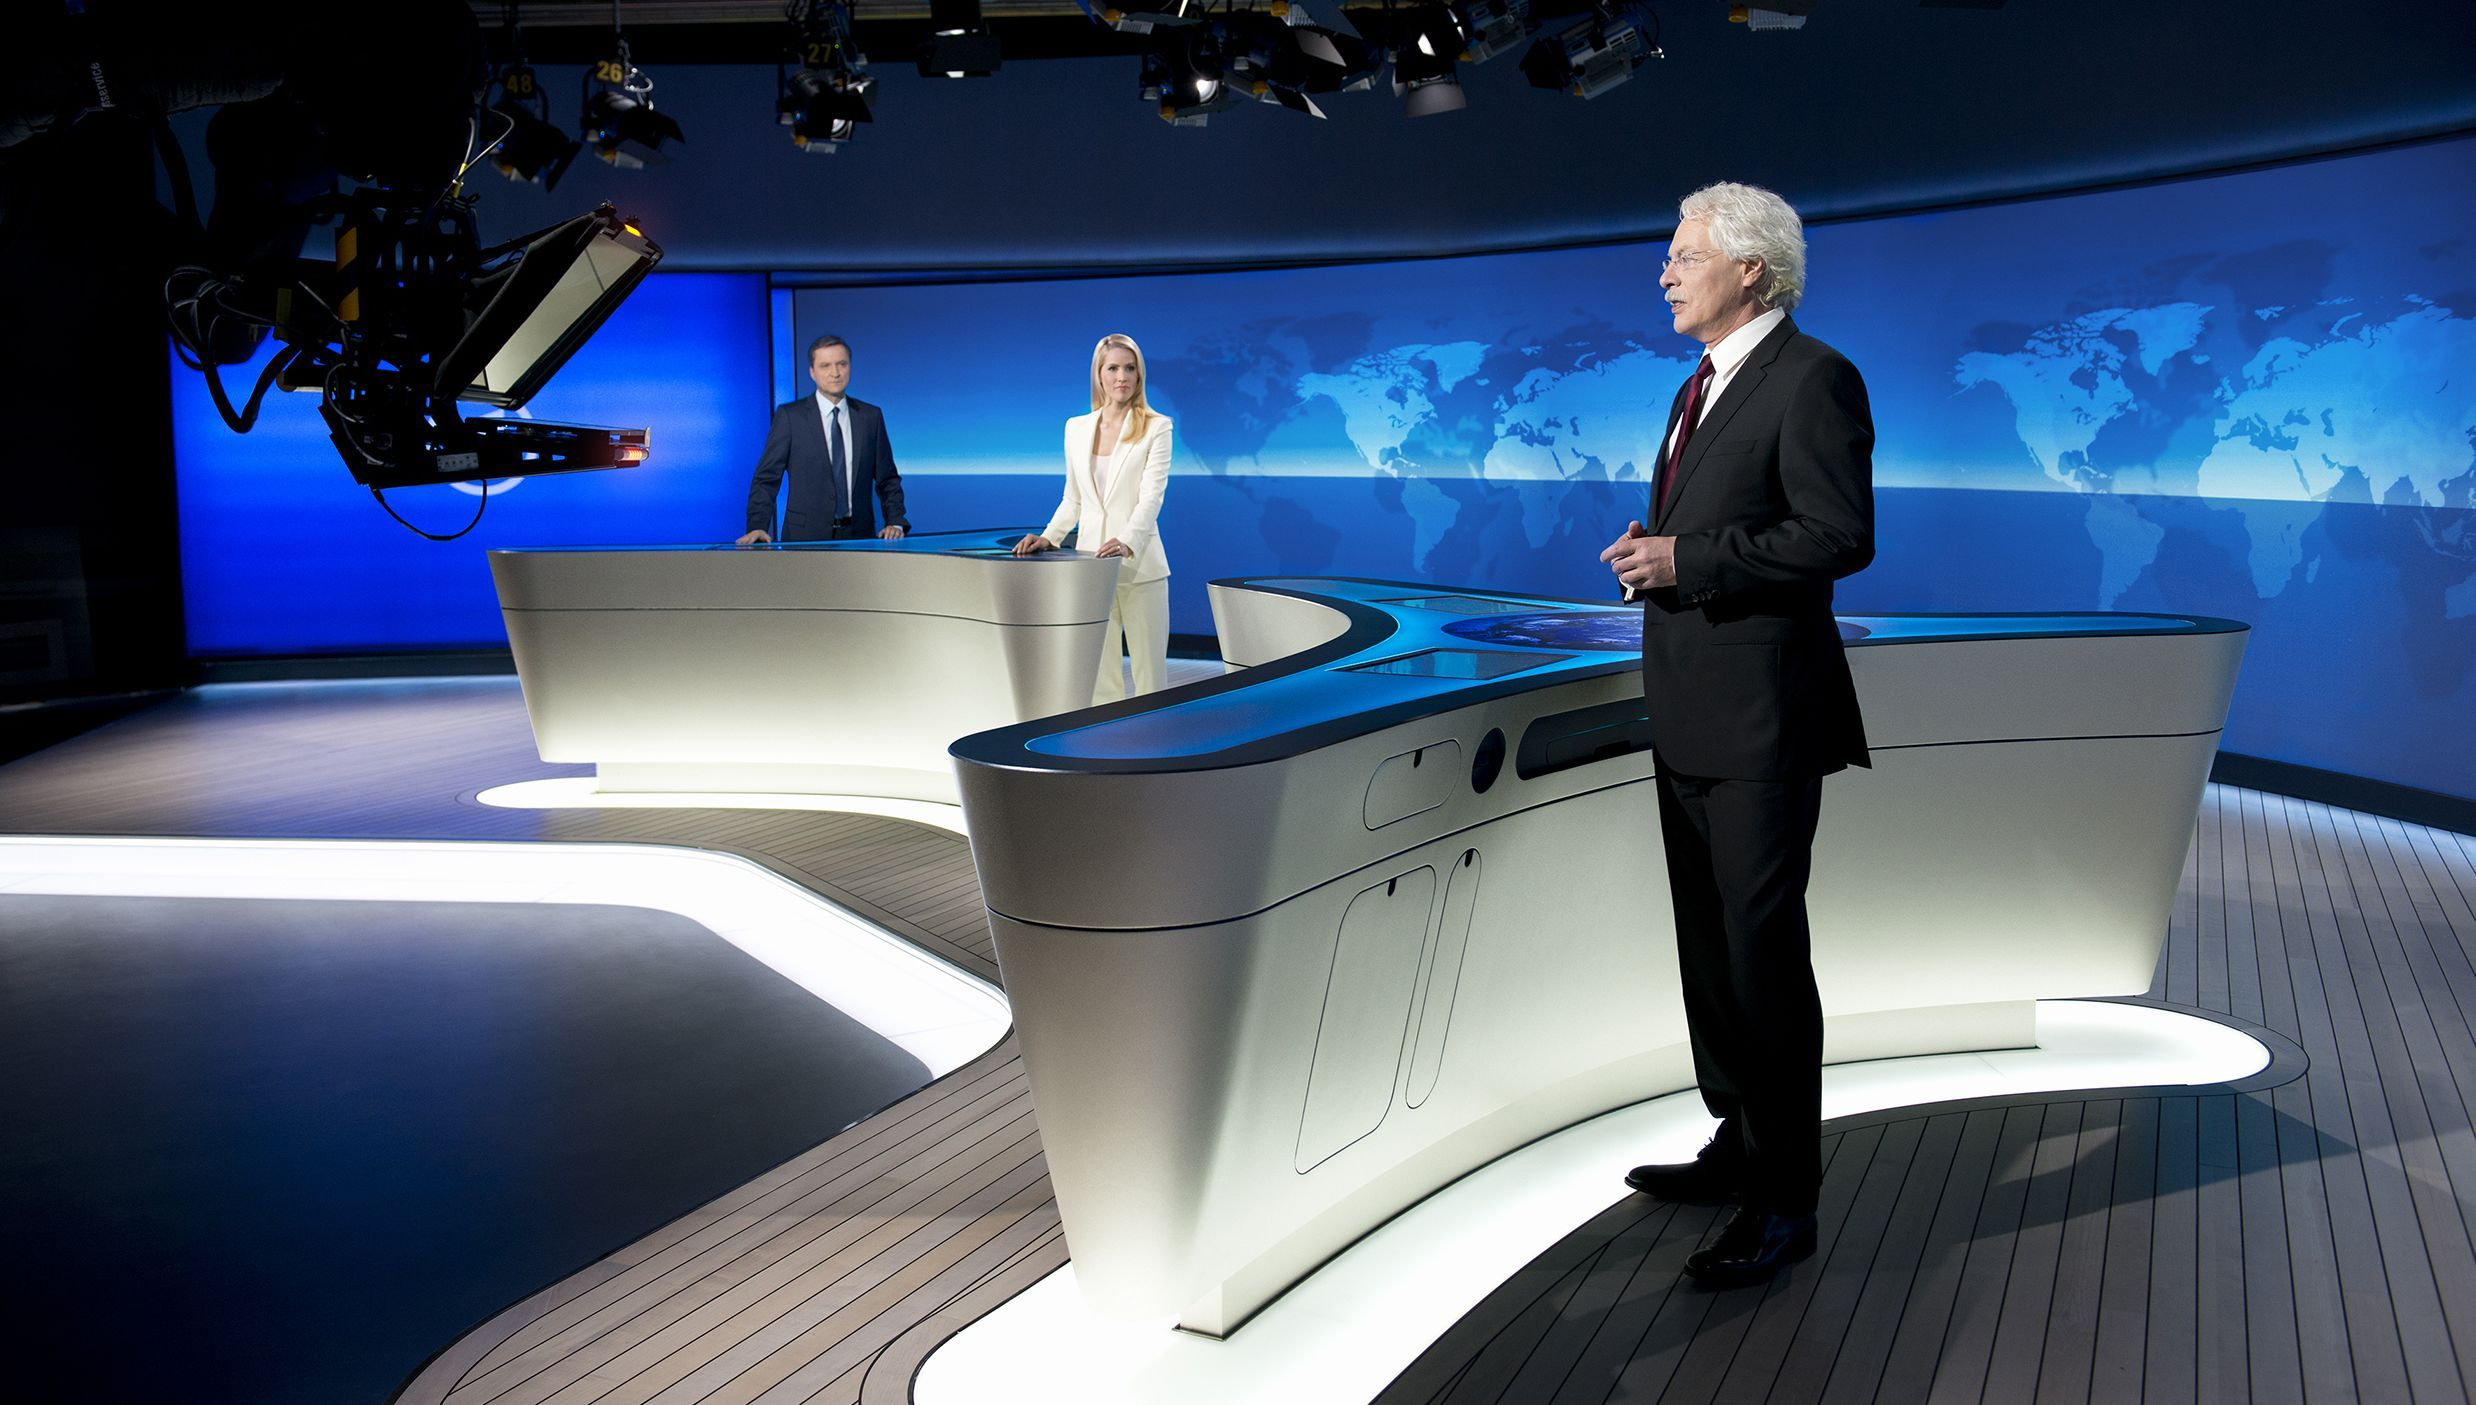 LA TELEVISIONE IN GERMANIA: IL TAGESSCHAU, IL TG DEL PRIMO CANALE (A CURA DI FEDE)